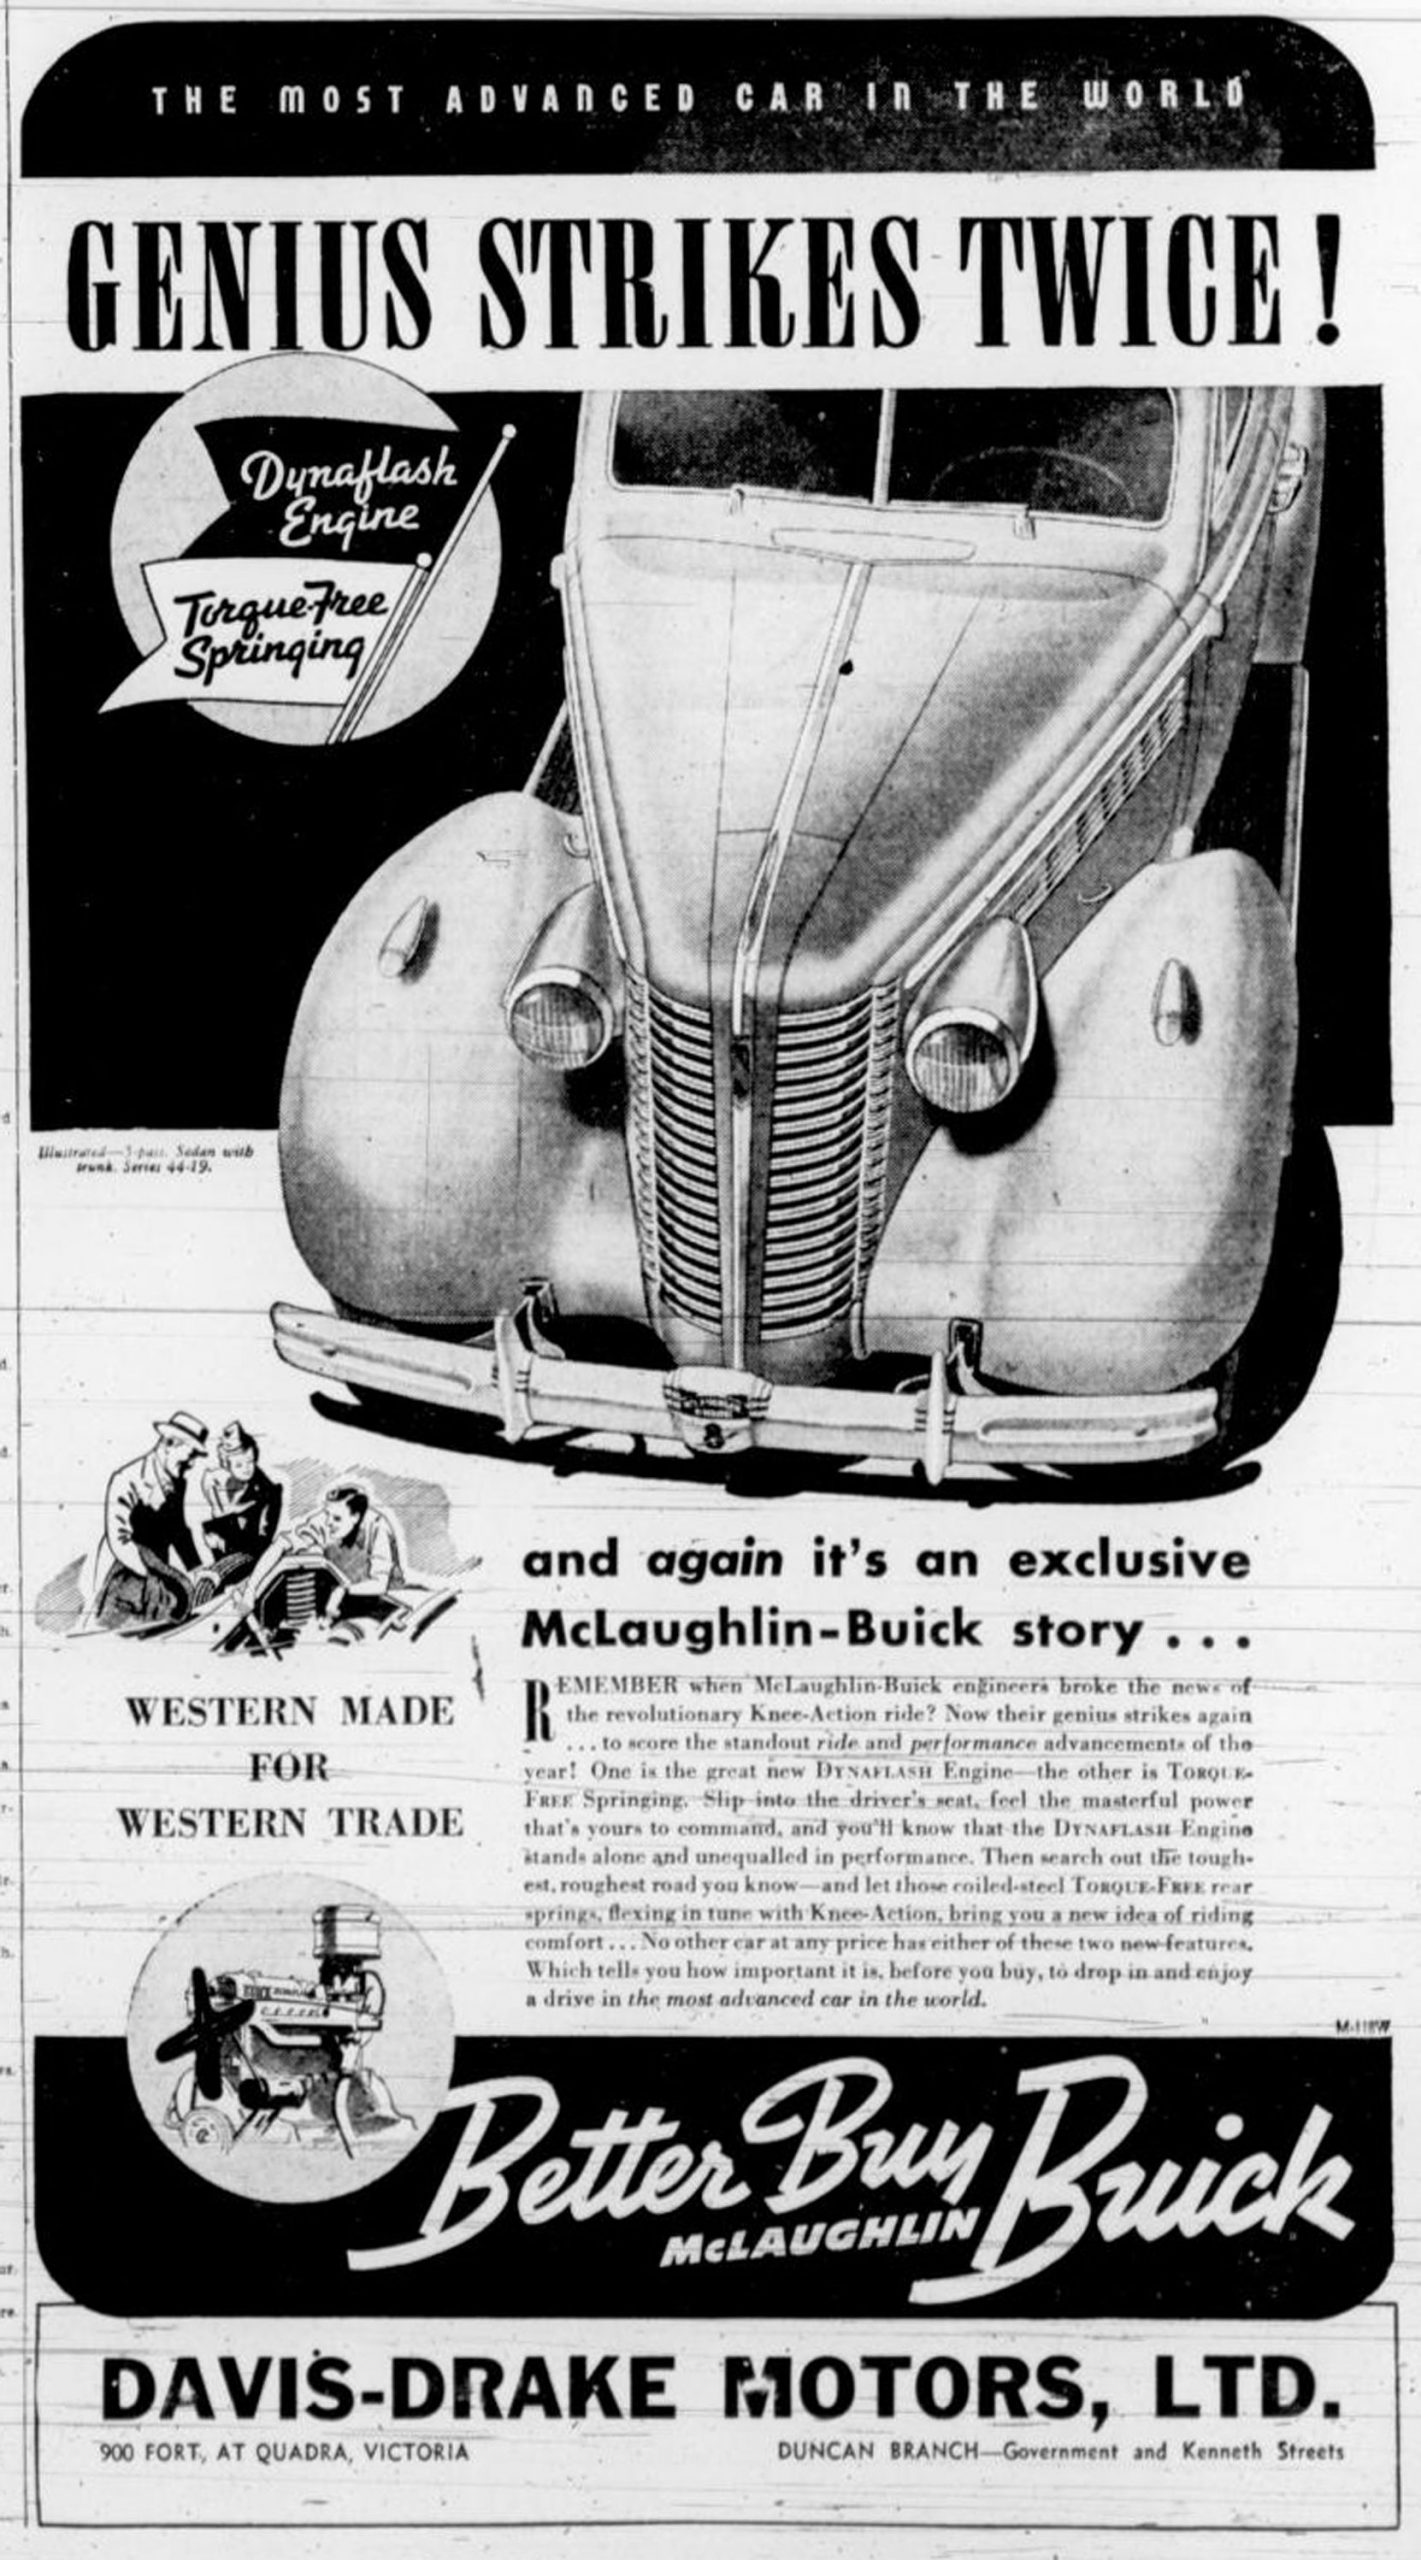 1938 advertisement for McLaughlin-Buick, from Davis-Drake Motors Ltd., Government Street at Kenneth Street in downtown Duncan.